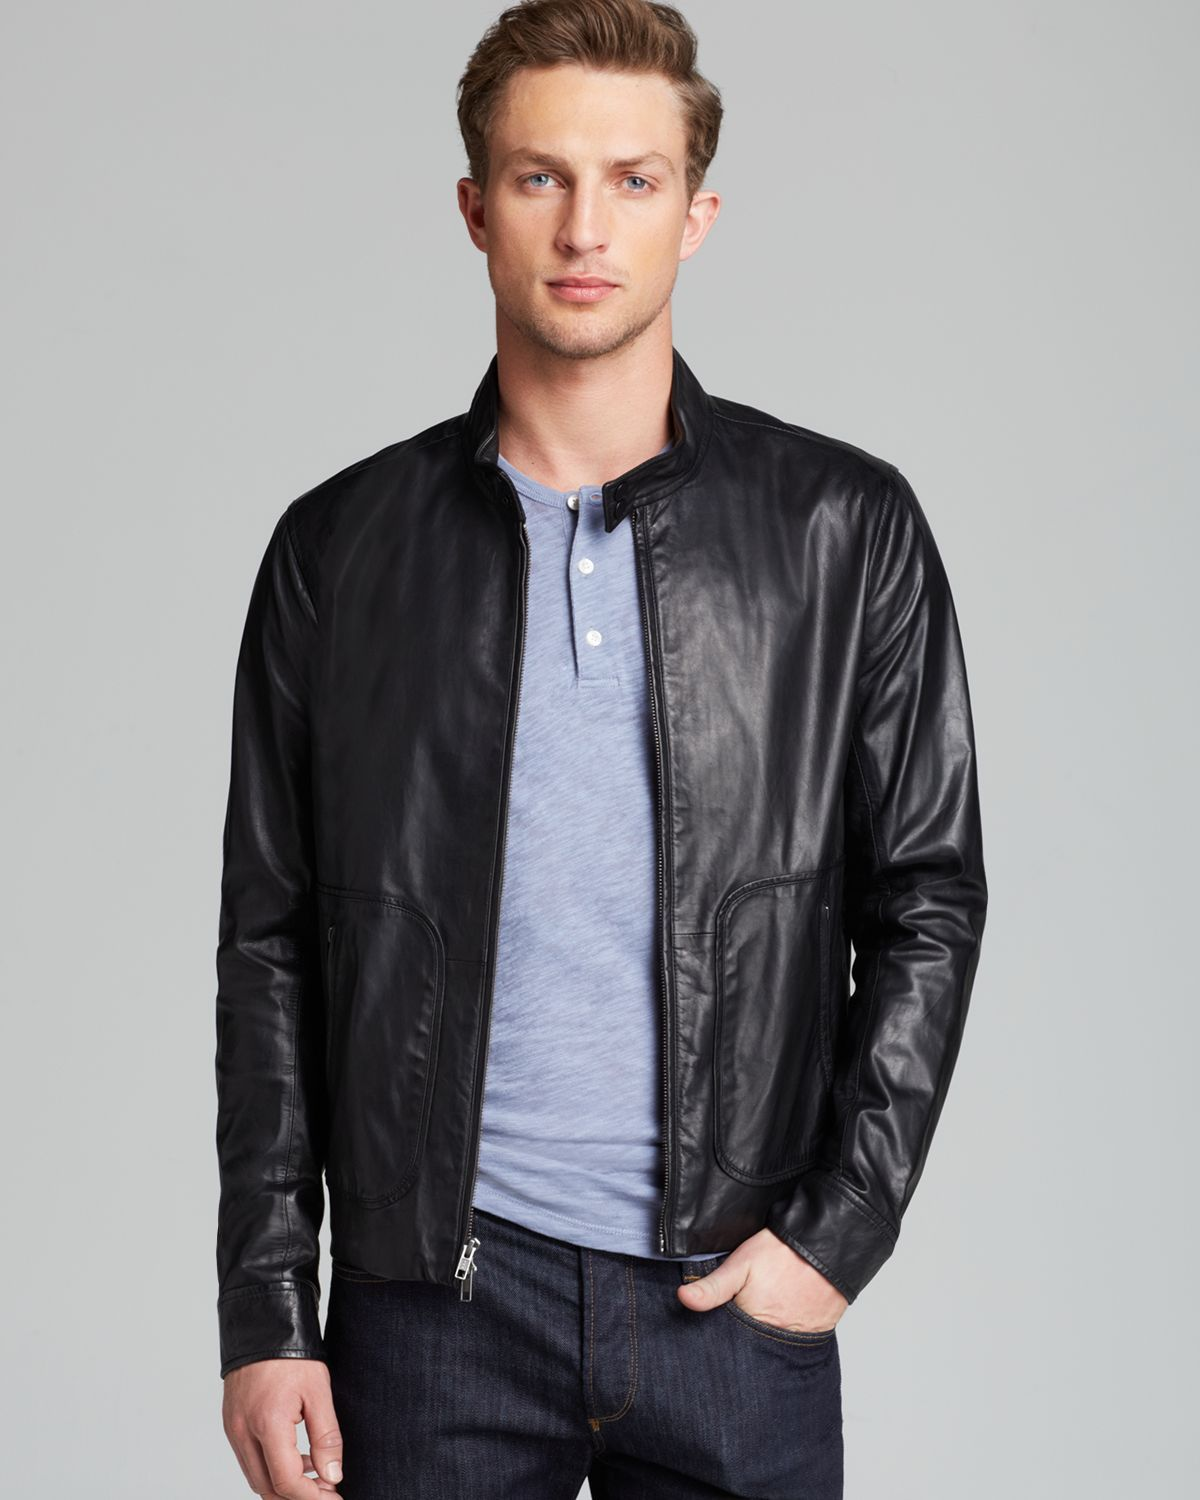 Moto Leather Jacket Mens pRNmTp Leather jacket men